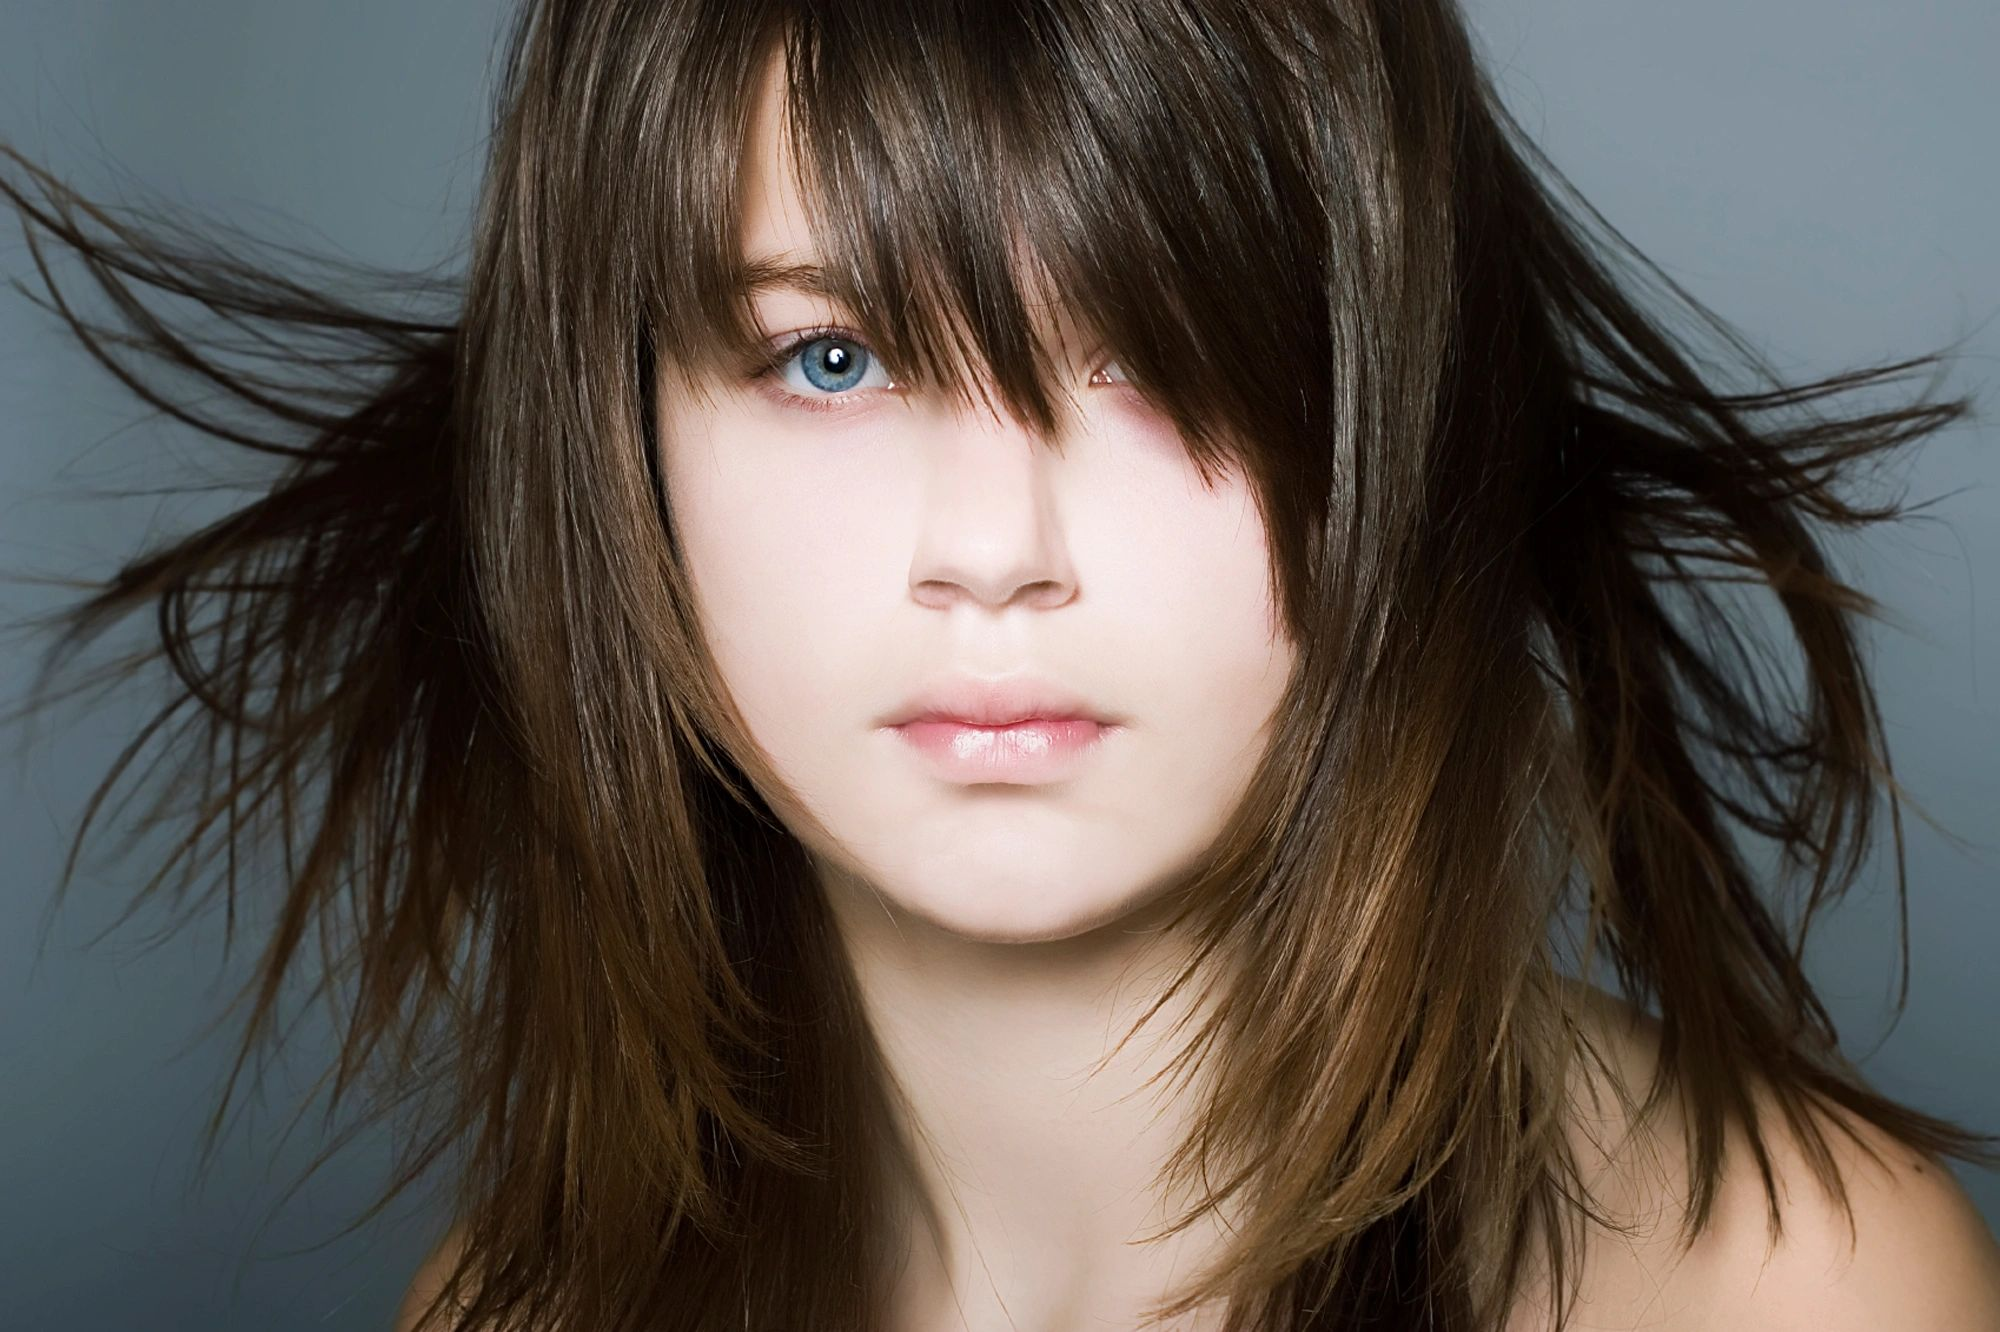 Hair Color Haircuts Salon Oc Knoxville Tennessee